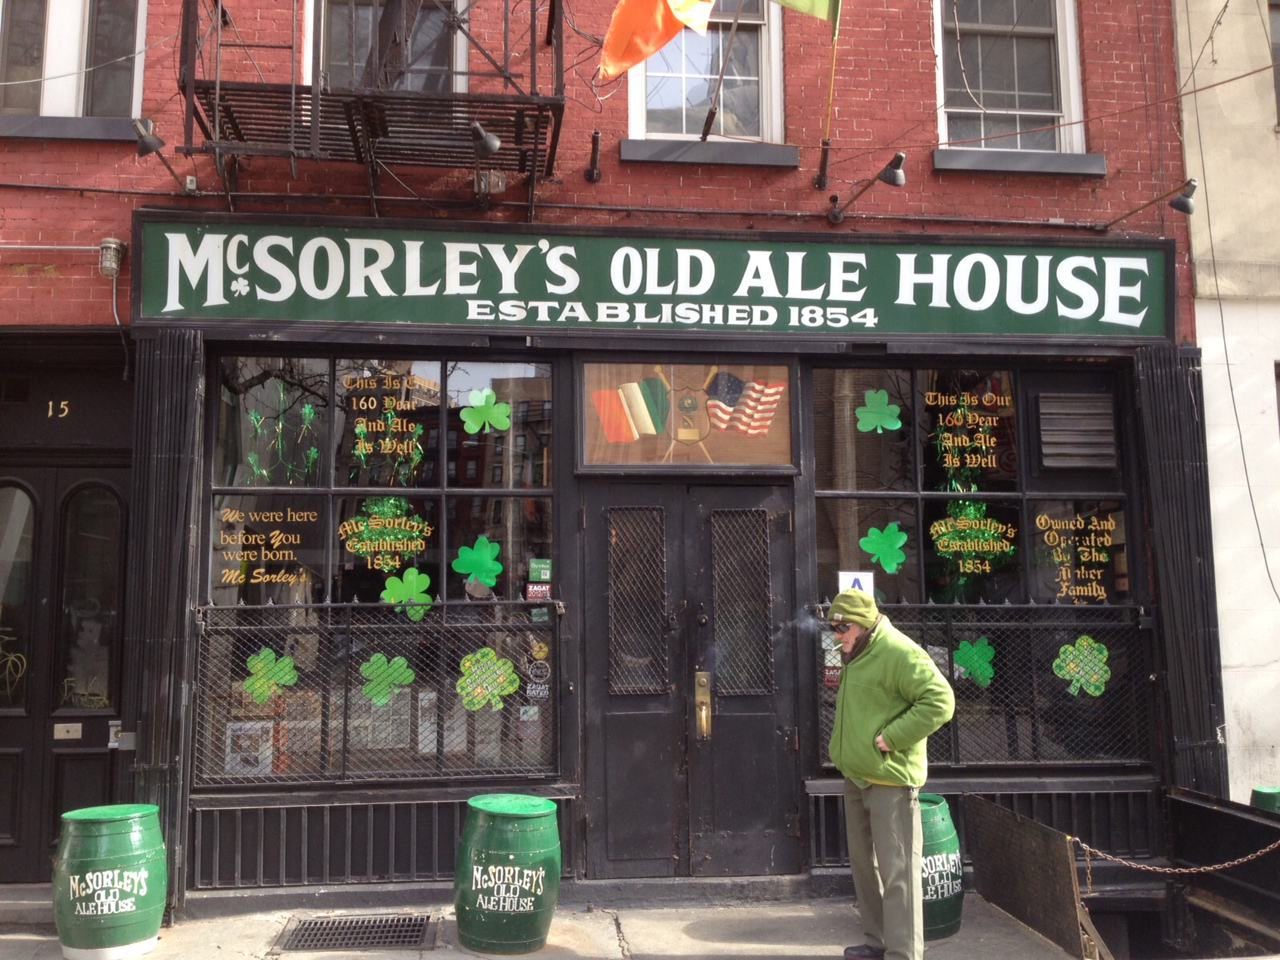 """A man dressed in green walks in front of a restaurant decorated for Saint Patrick's Day, with a sign that reads """"McSorley's Old Ale House"""""""